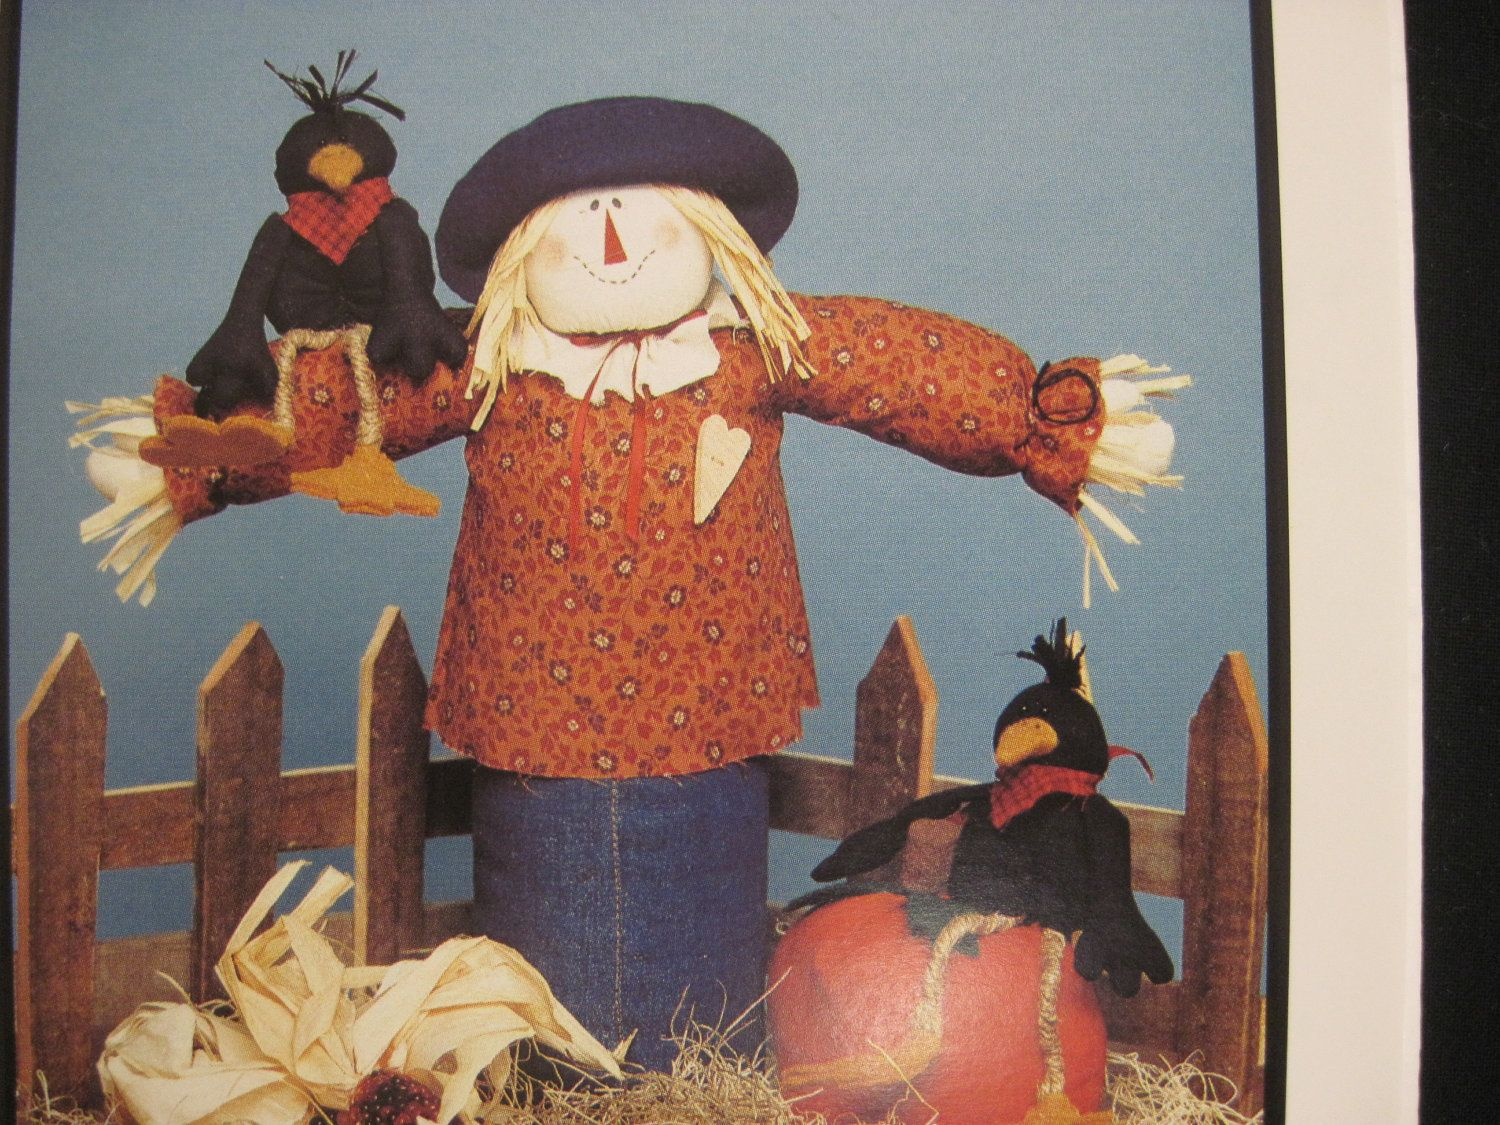 Scarecrow And Friends Pattern Using A Recycled Plastic Bottle Etsy In 2020 Scarecrow Recycled Plastic Plastic Bottles